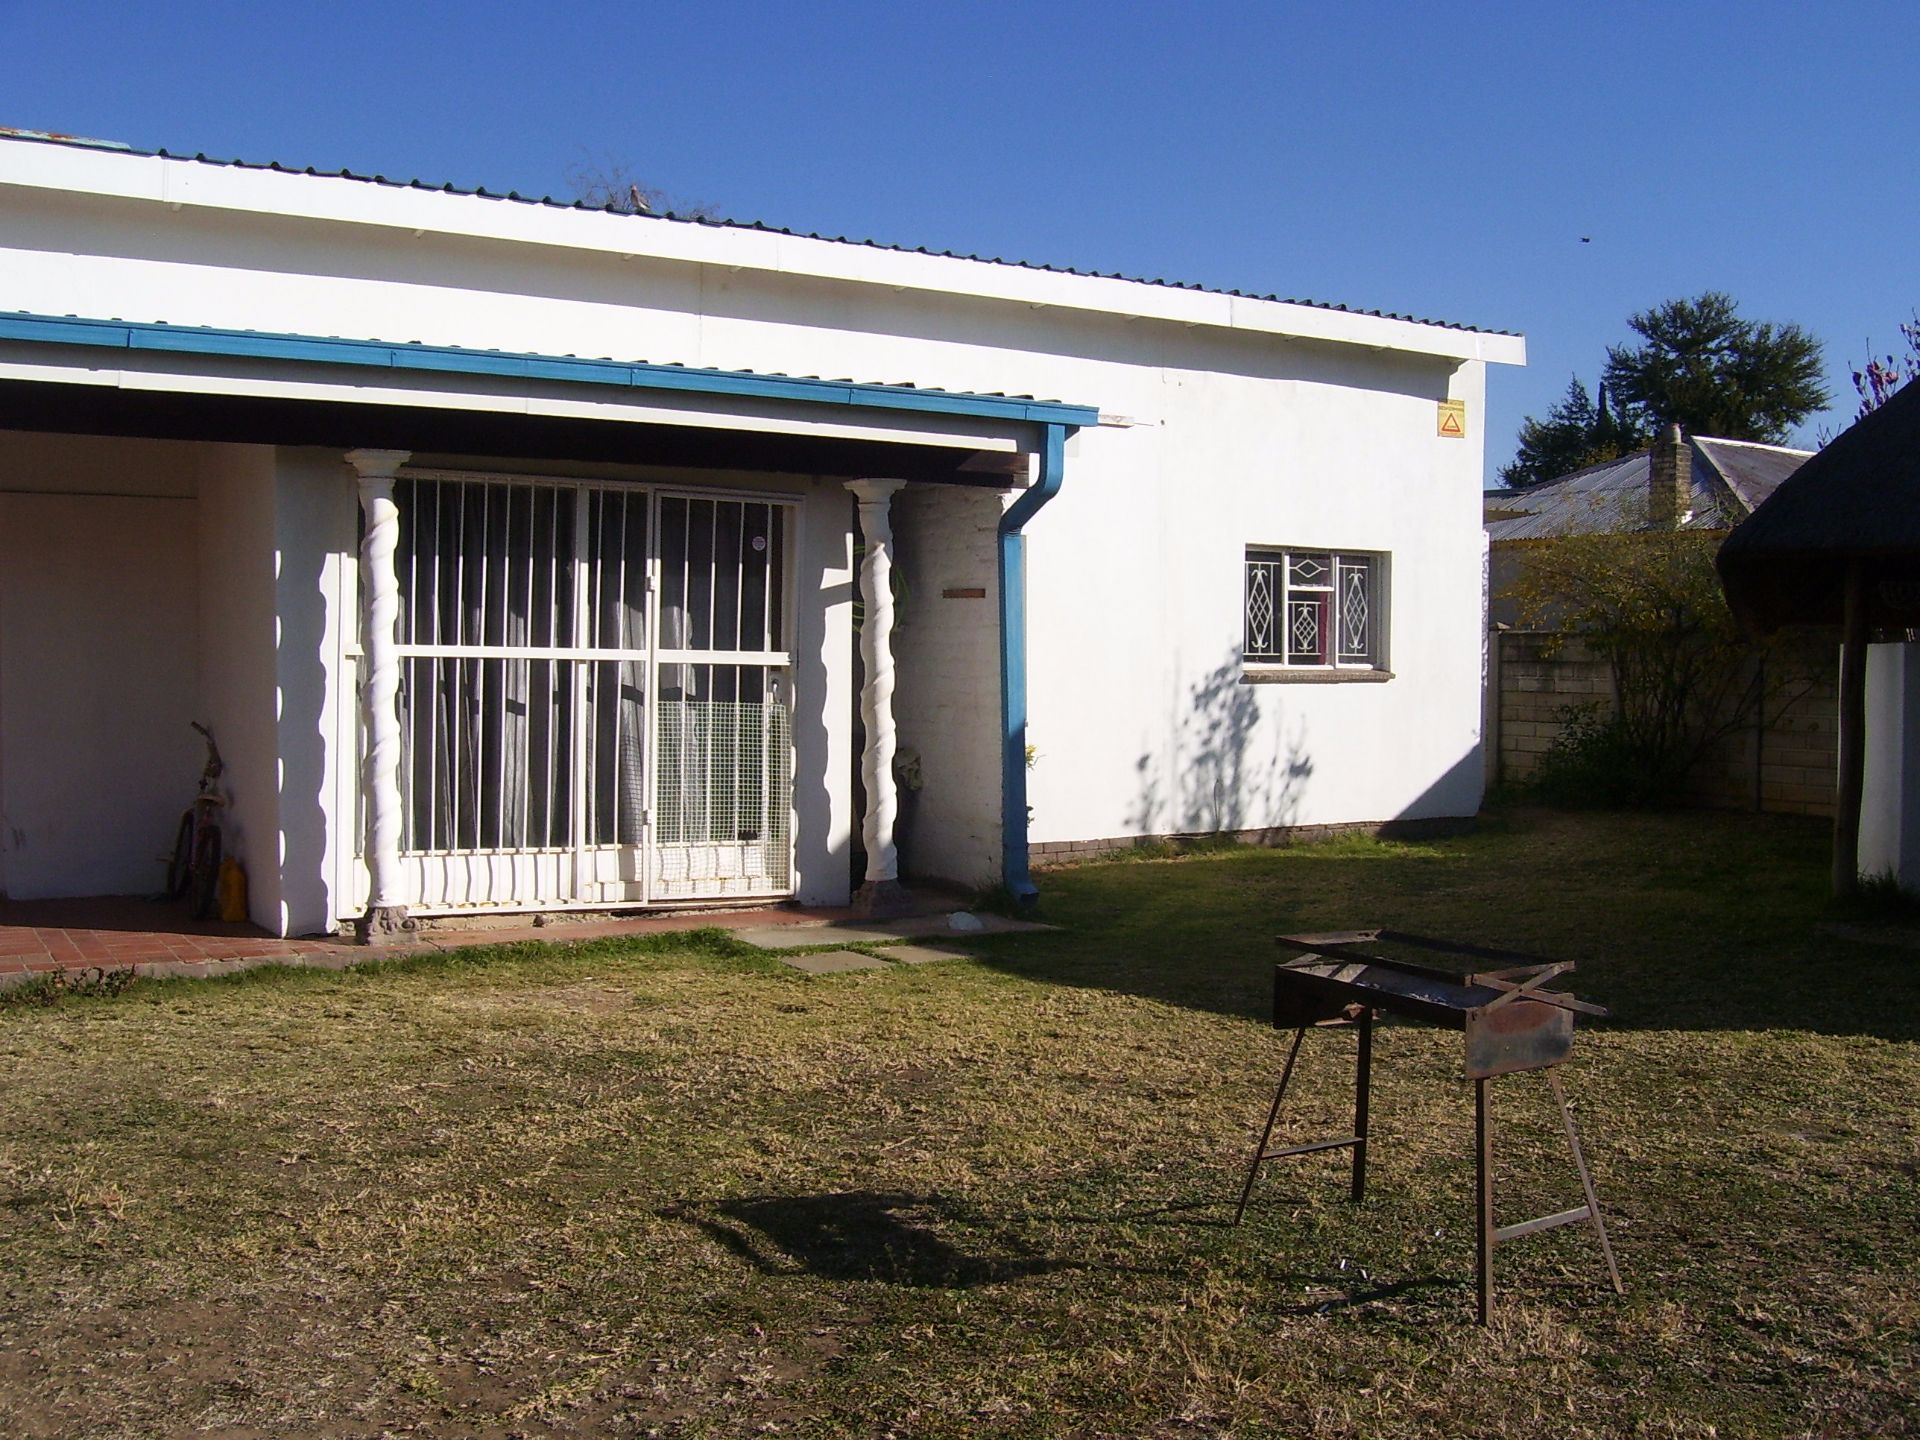 Suid Dorp property for sale. Ref No: 13503270. Picture no 6